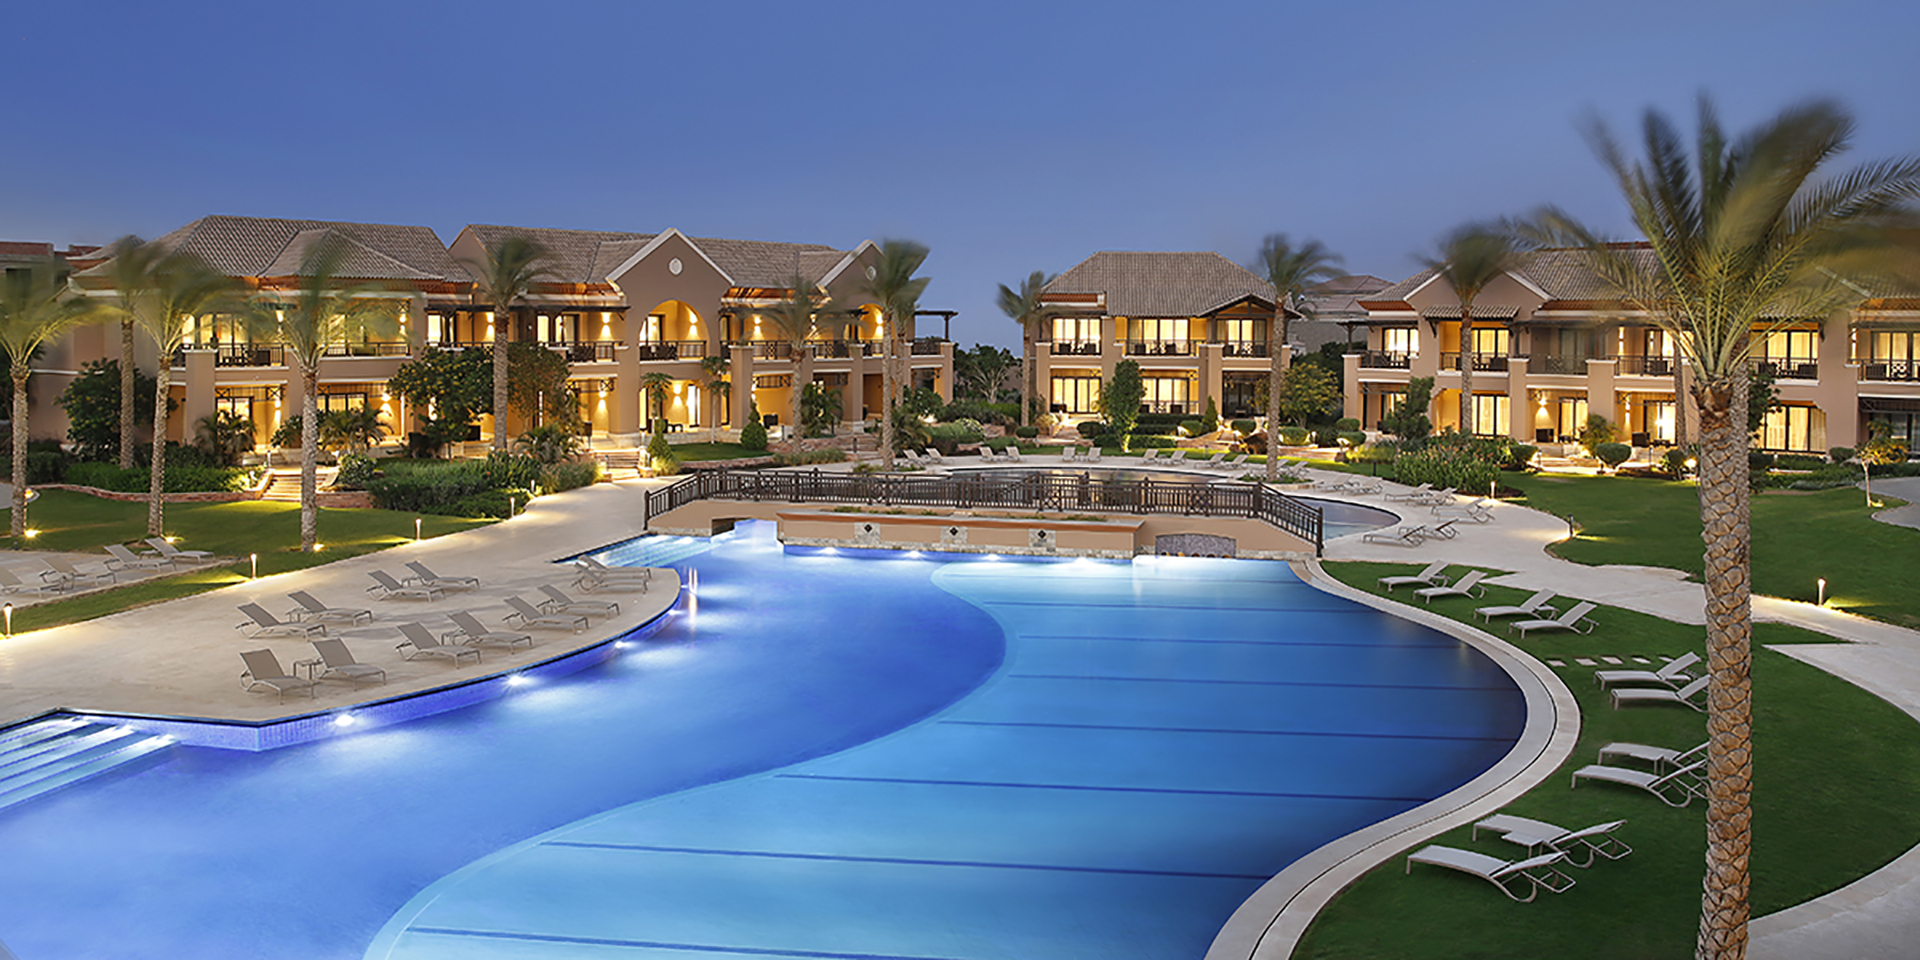 Westin Hotels and Resorts announces the opening of The Westin Cairo Golf Resort & Spa Katameya Dunes in Egypt